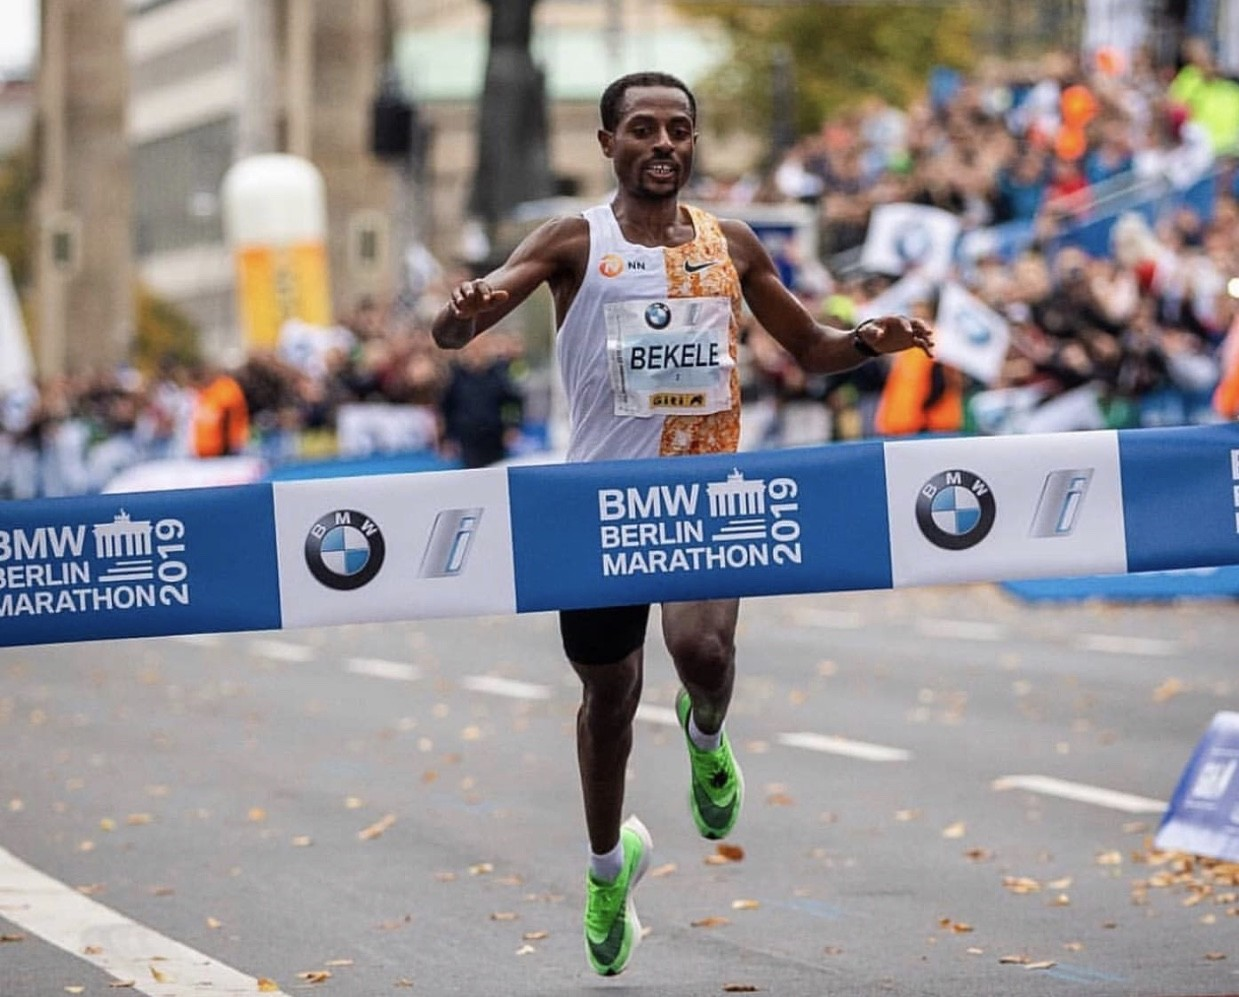 Kenenisa Bekele wins Berlin Marathon just missed breaking the world record by two seconds